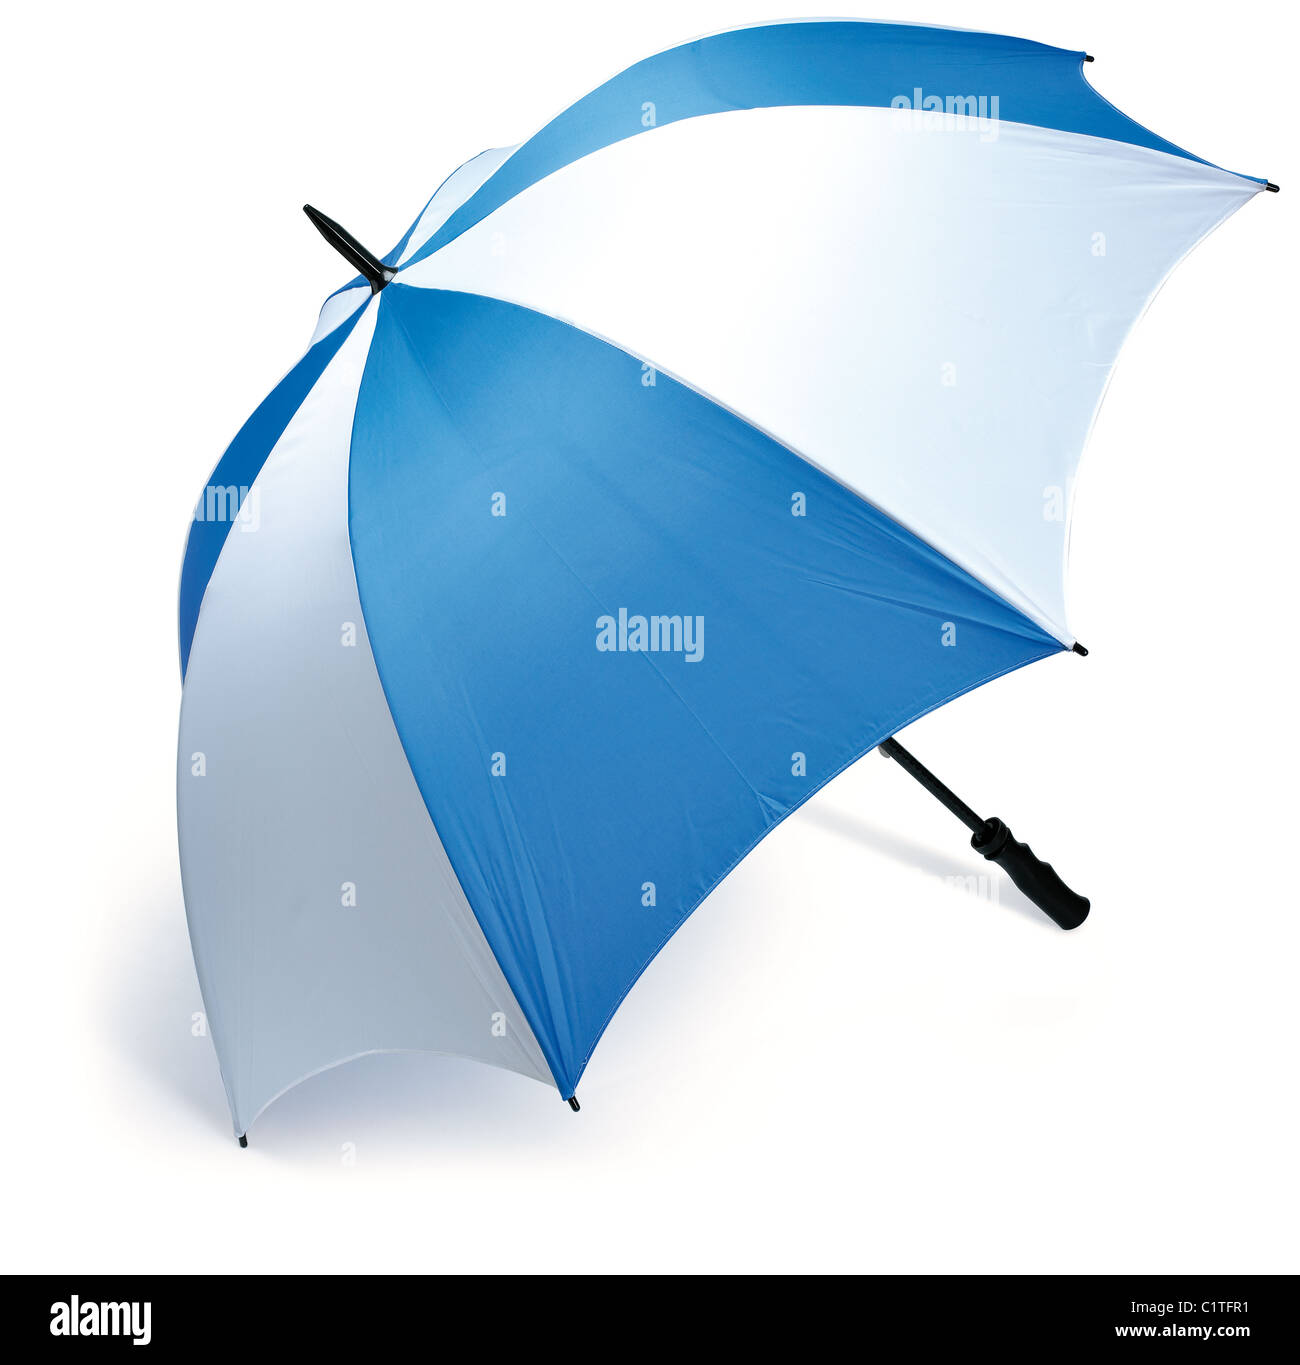 a large blue and white golf sport umbrella isolated on a white background with work path - Stock Image